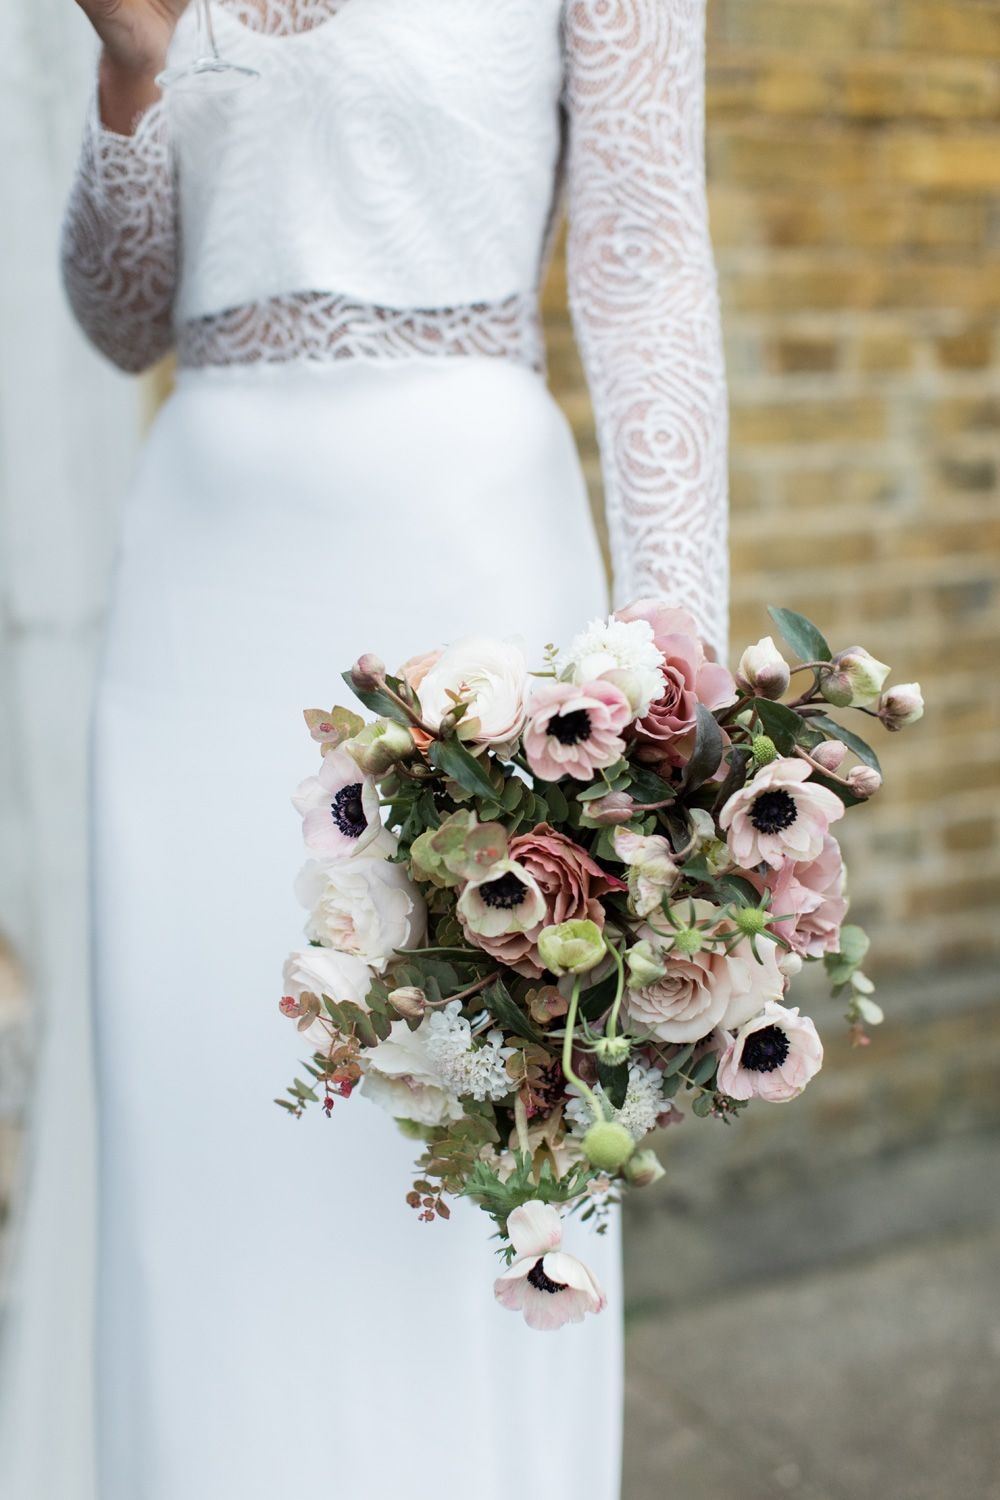 Pale Pink Dusty Rose And Ivory Bouquet With Anemones Roses Ranunculus Scabiosa Hellebores Flower Bouquet Wedding Wedding Bouquets Anemone Bridal Bouquet